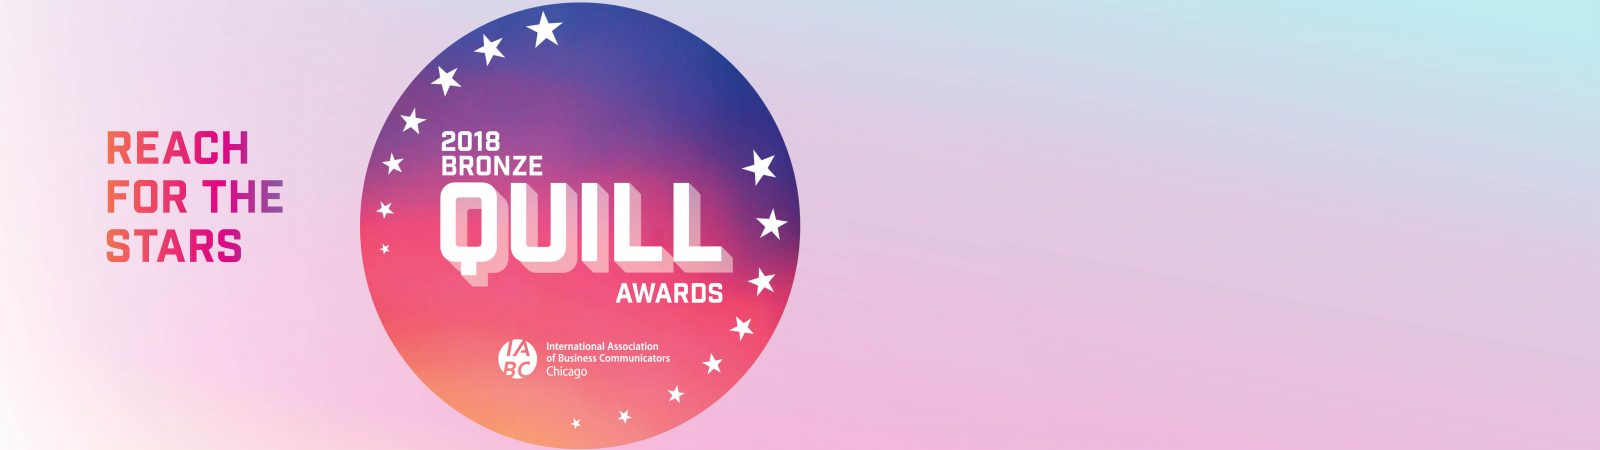 Congratulations to the 2018 Bronze Quill Award Winners